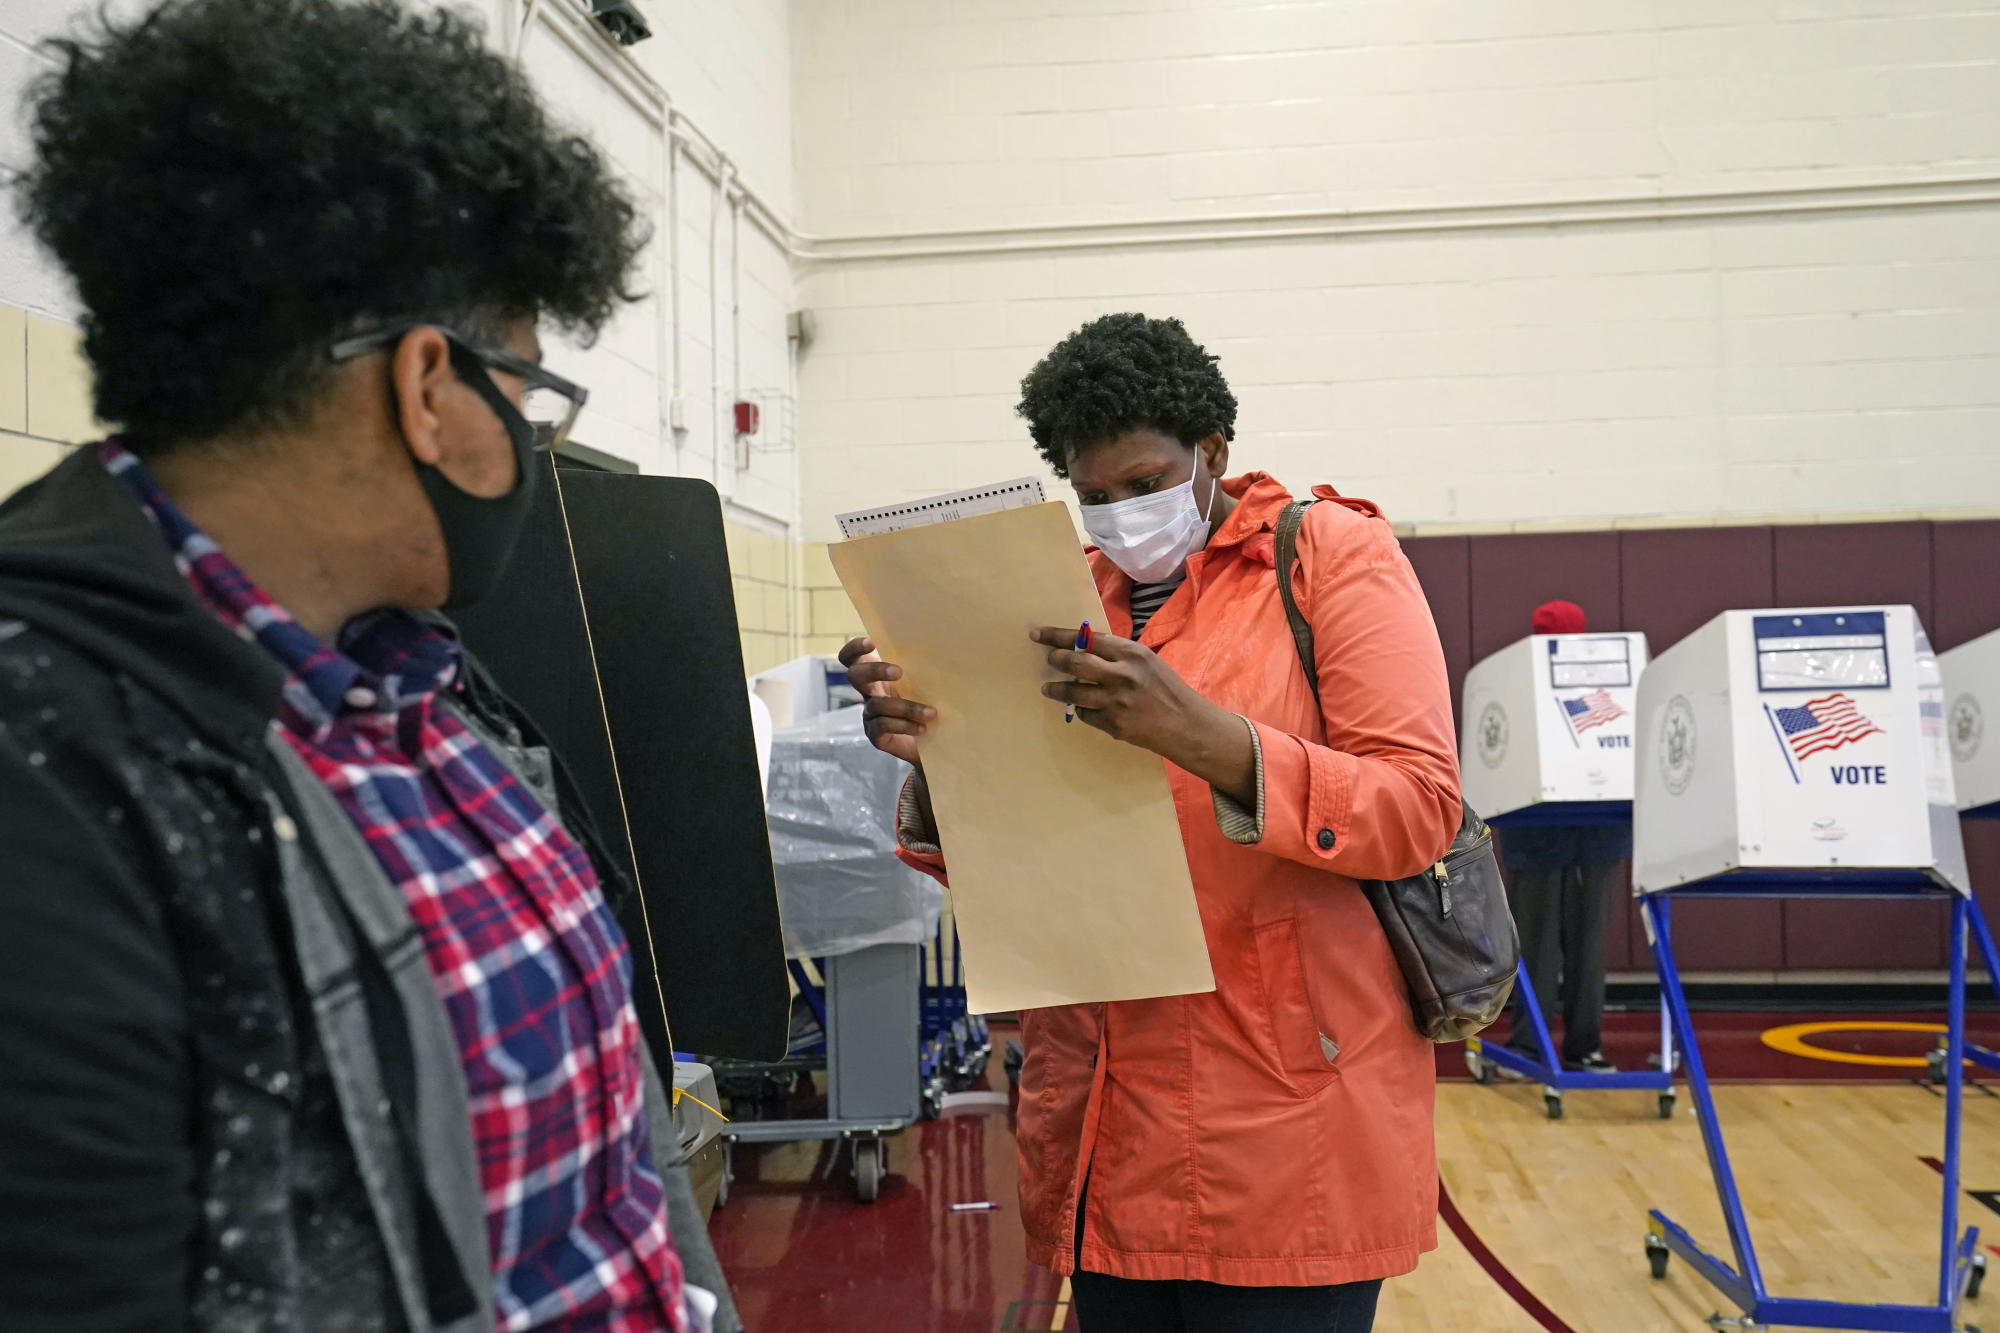 Election 2020: The economy fades as a top voter concern – Yahoo Canada Finance